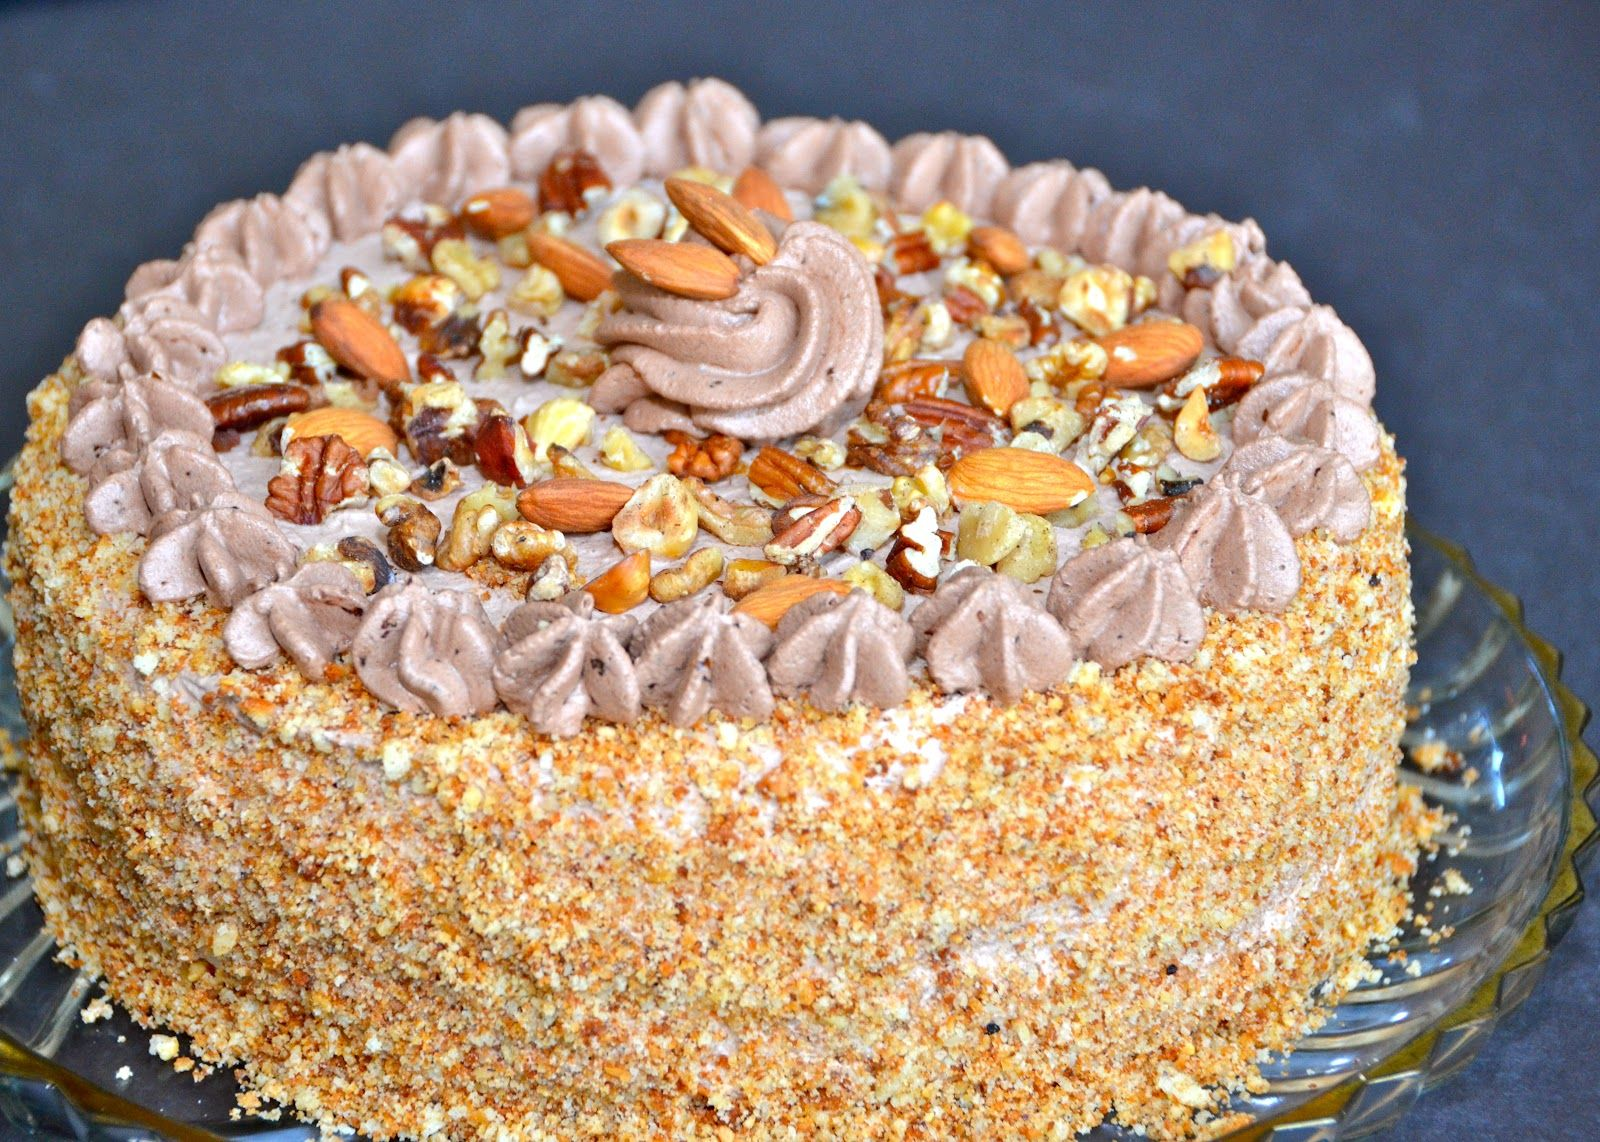 Squirrel Cake with nuts - Delights Of Culinaria